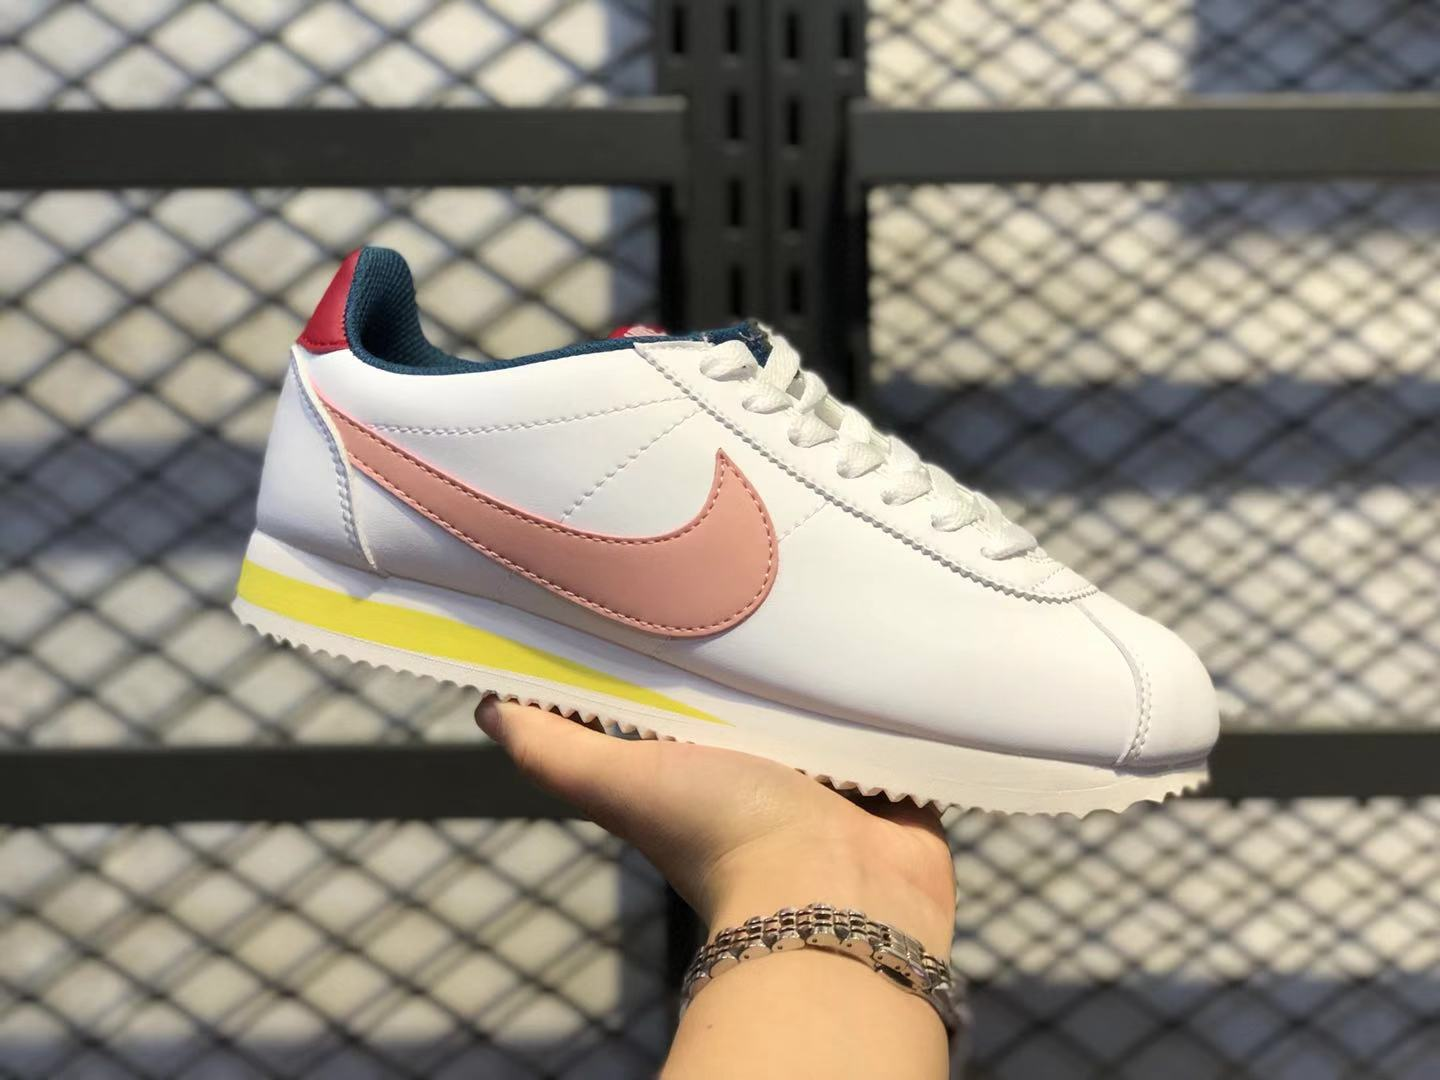 Hot Sale Nike Cortez Leather White/Gym Red-Chrome Yellow-Coral Stardust